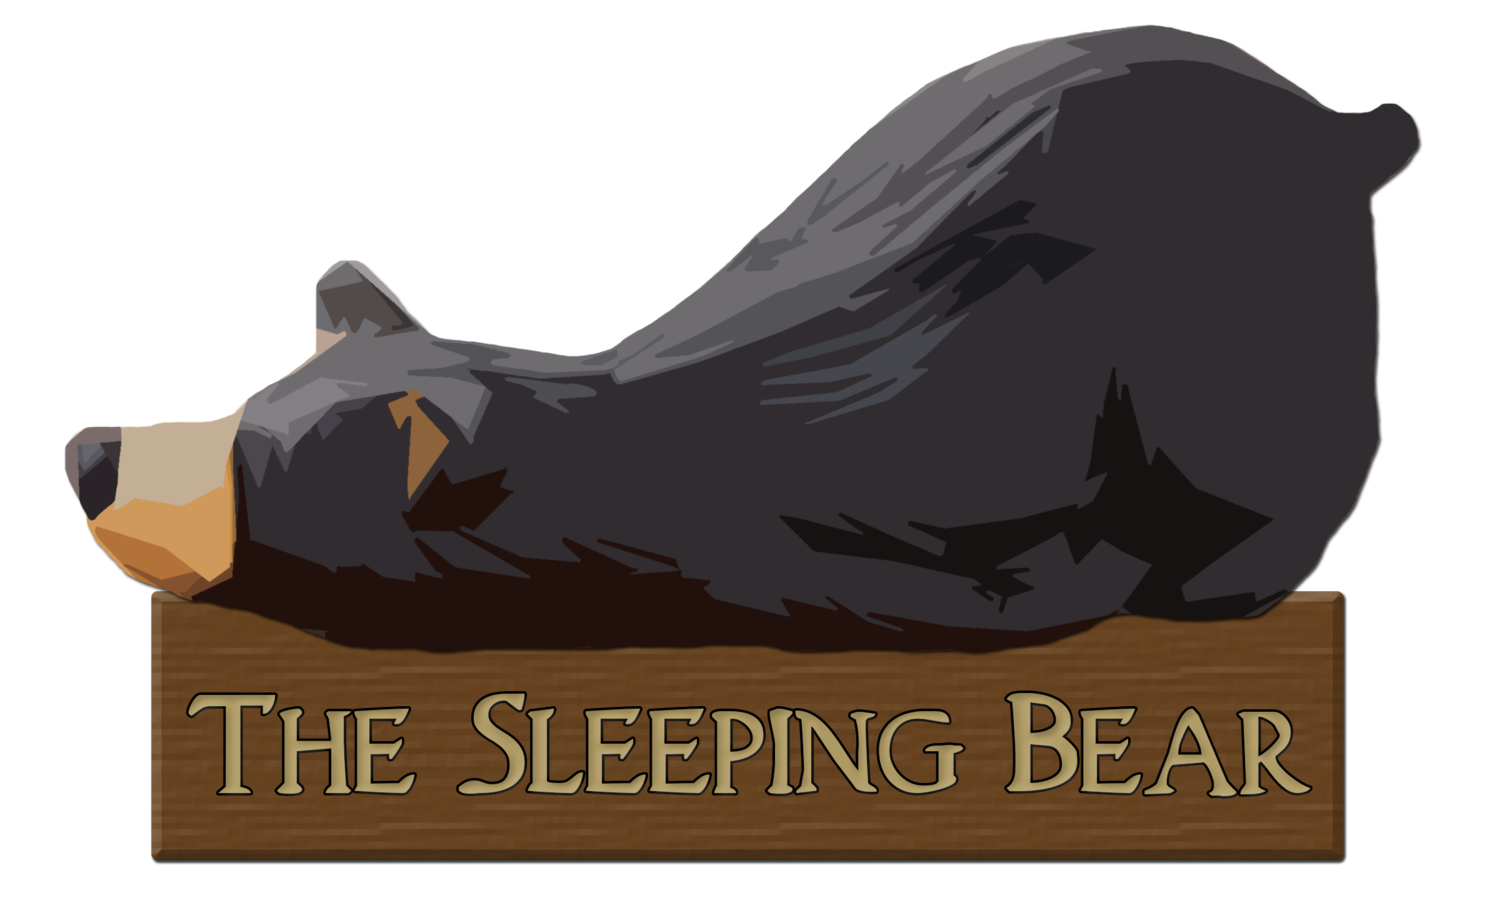 The Sleeping Bear